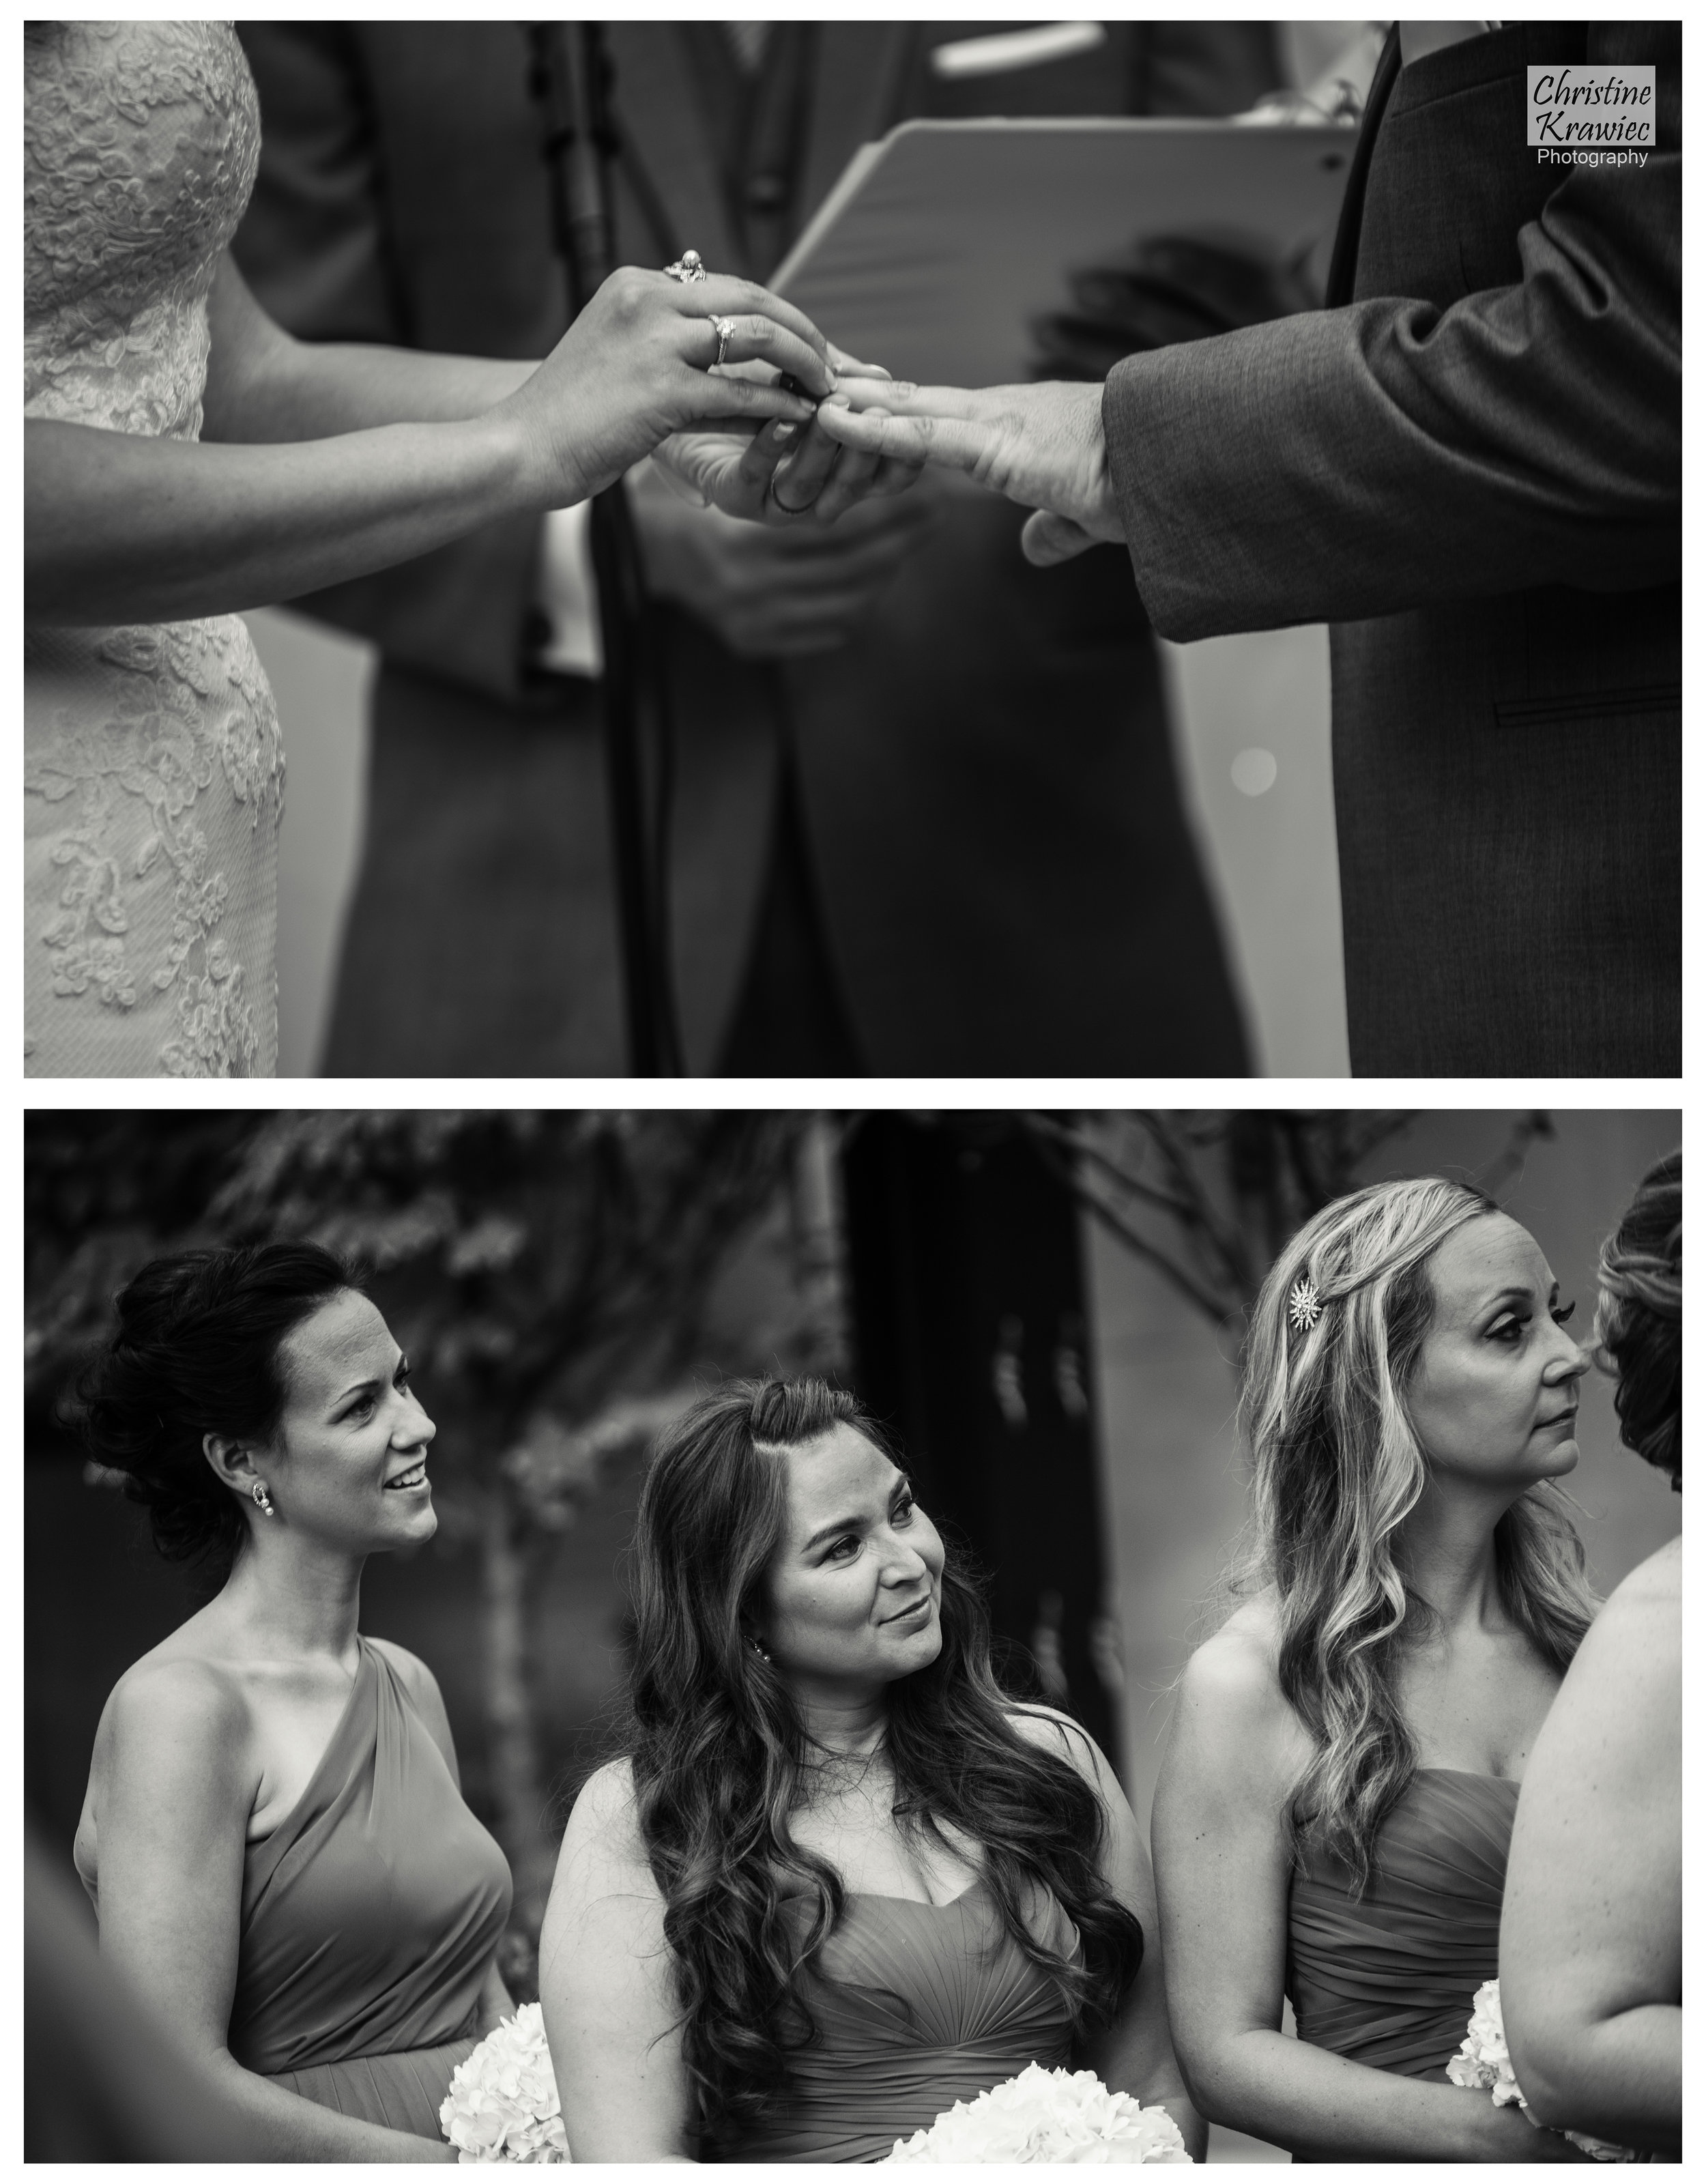 Lauren placing her husband's wedding ring on his finger :)